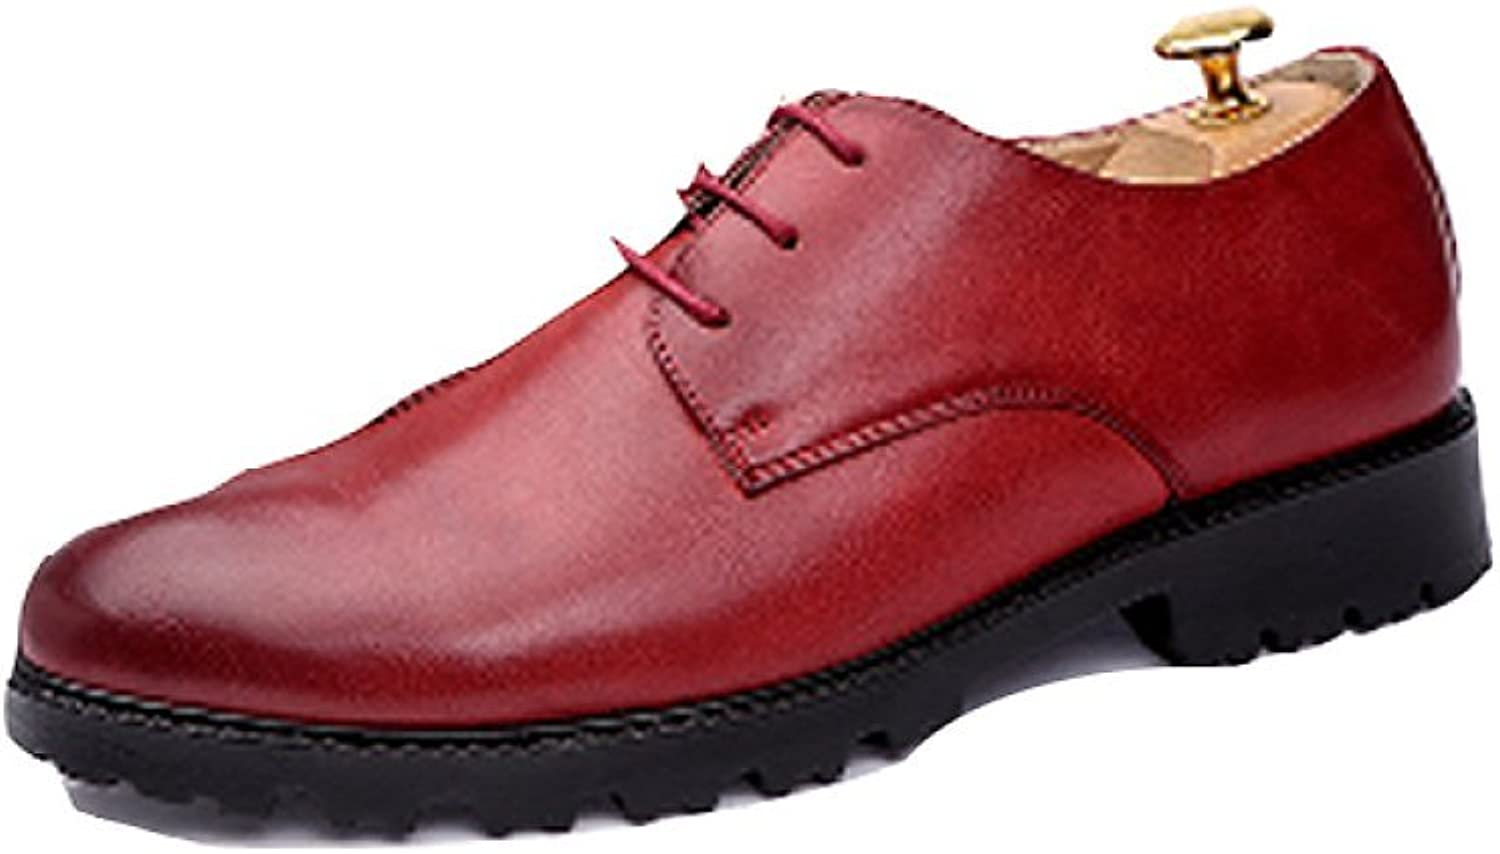 NIUMJ Men Summer Casual Fashion Business Bullock Outdoor Breathable Lace Leather shoes